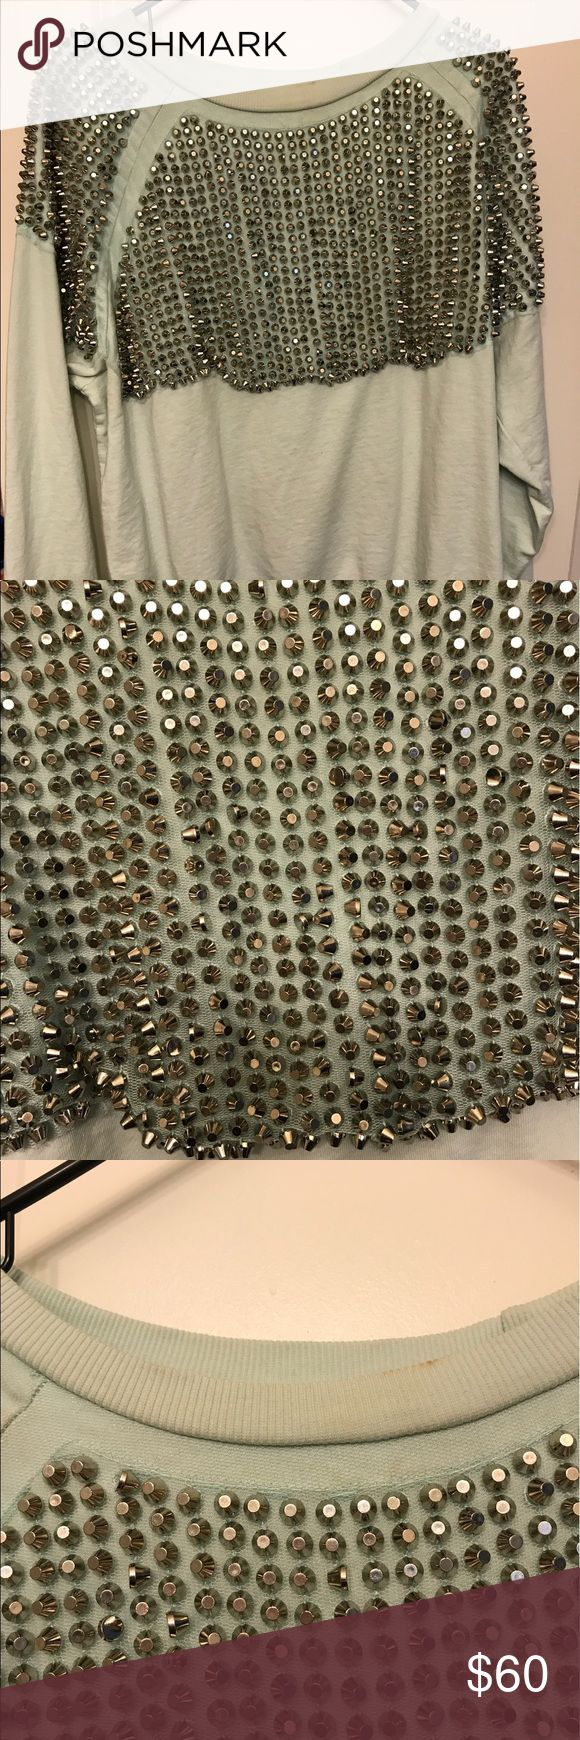 Mint green studded sweater from H&M This sweater has some stains around the collar, before shipping out I will attempt to get those out but I'm not sure if it's possible, please let me know if you have questions, the sweater itself is light weight material but the studs are super heavy H&M Sweaters